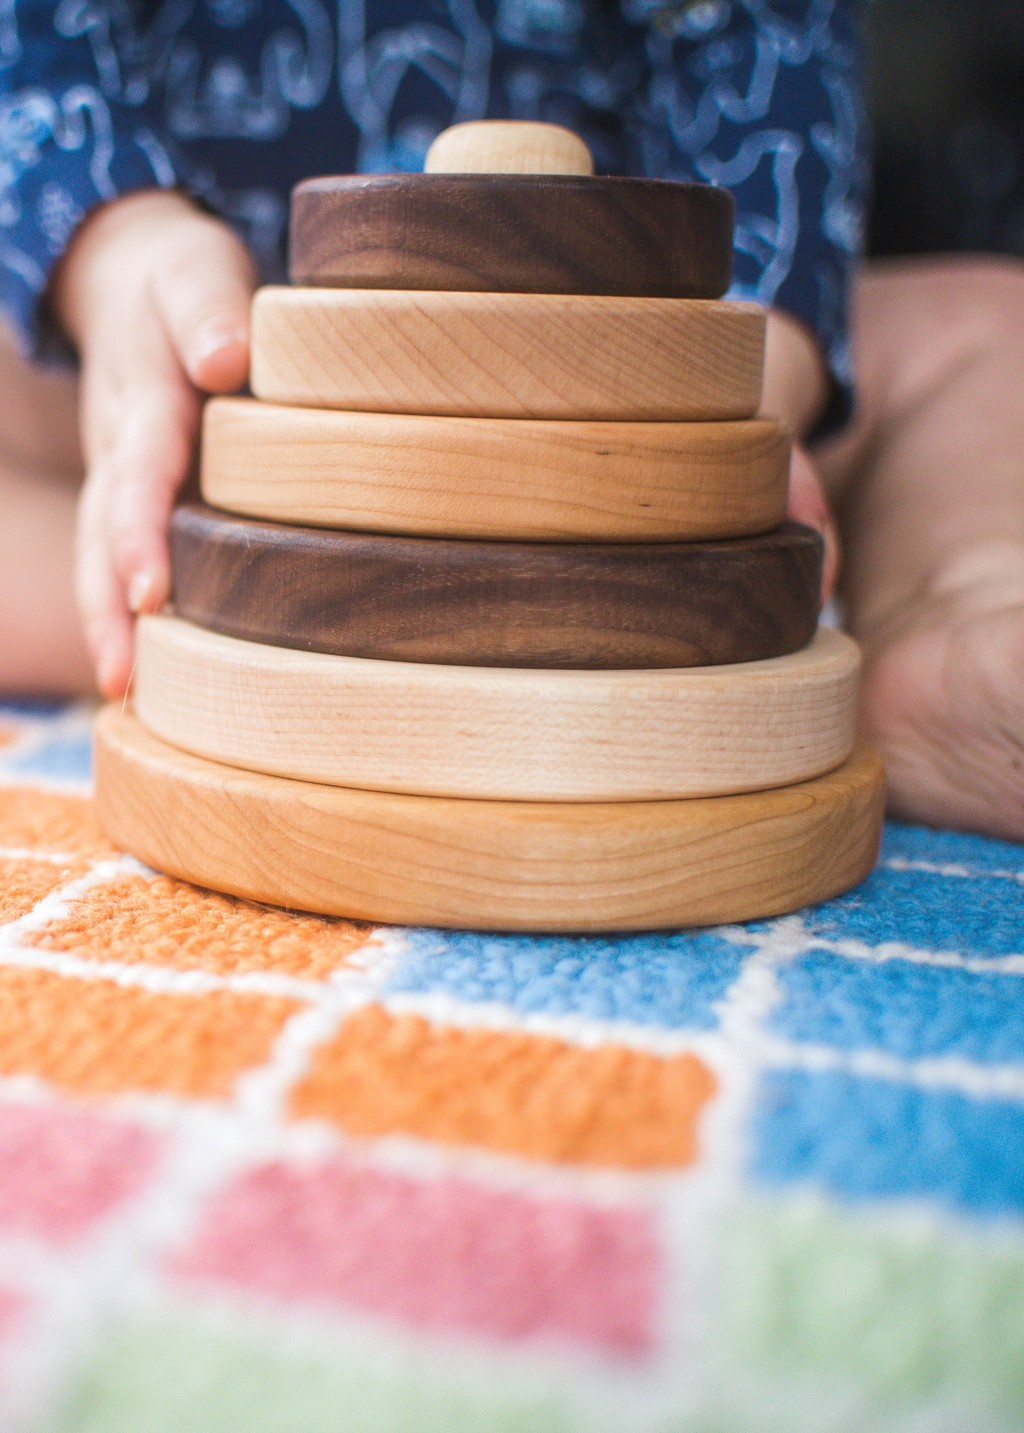 This image released by Etsy shows  wooden circle stackers for infants and toddlers by Etsy seller, SouthBendWorks. (Etsy via AP)